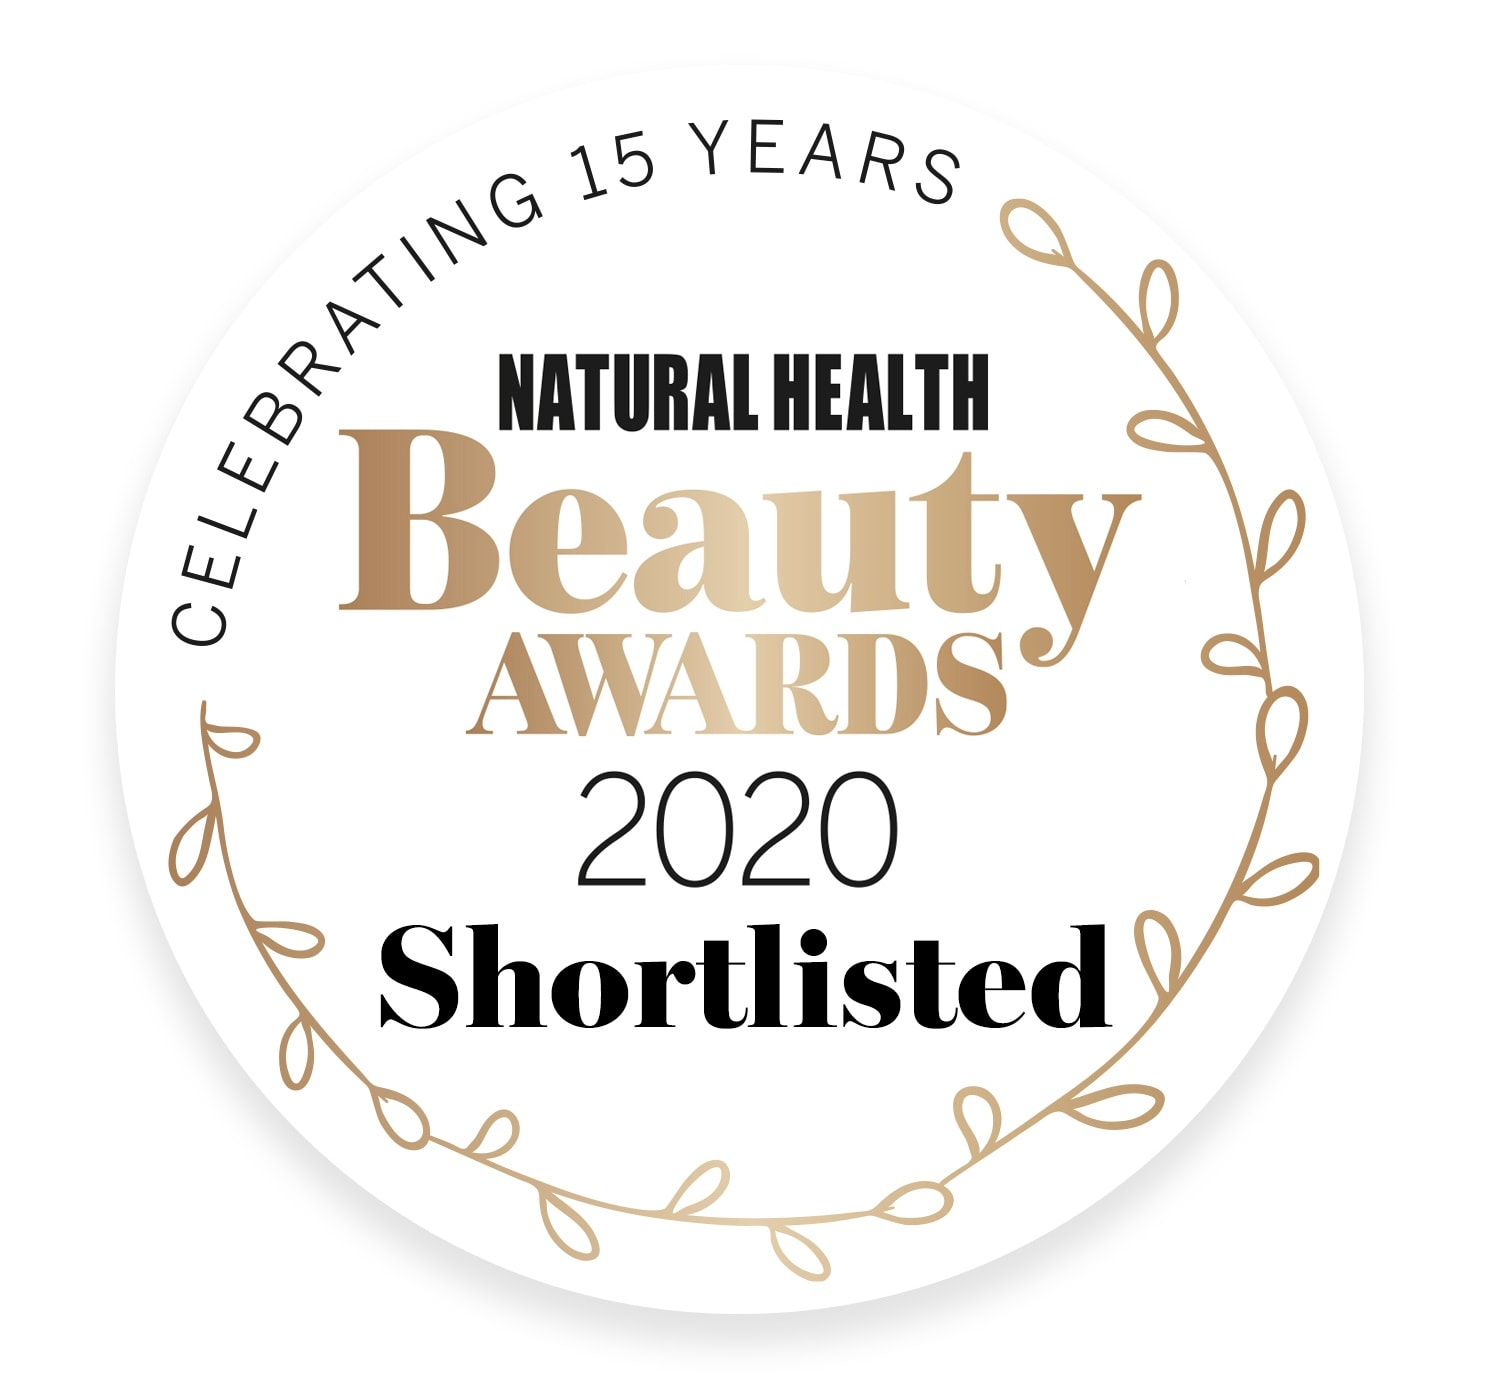 NH Beauty Award Logo Shortlisted